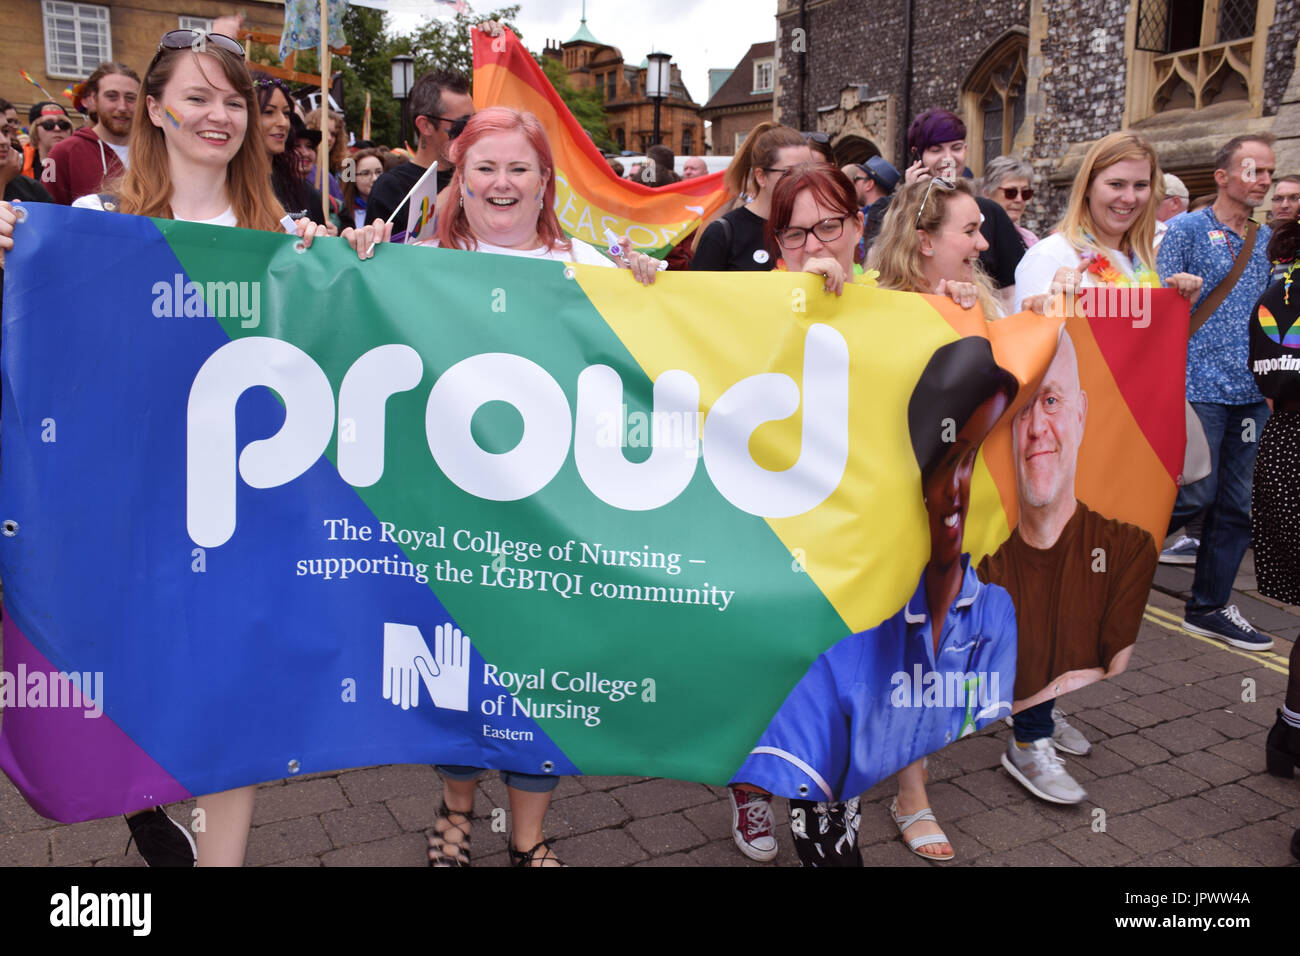 Pride 2017, Norwich UK, 29 July 2017 - Stock Image